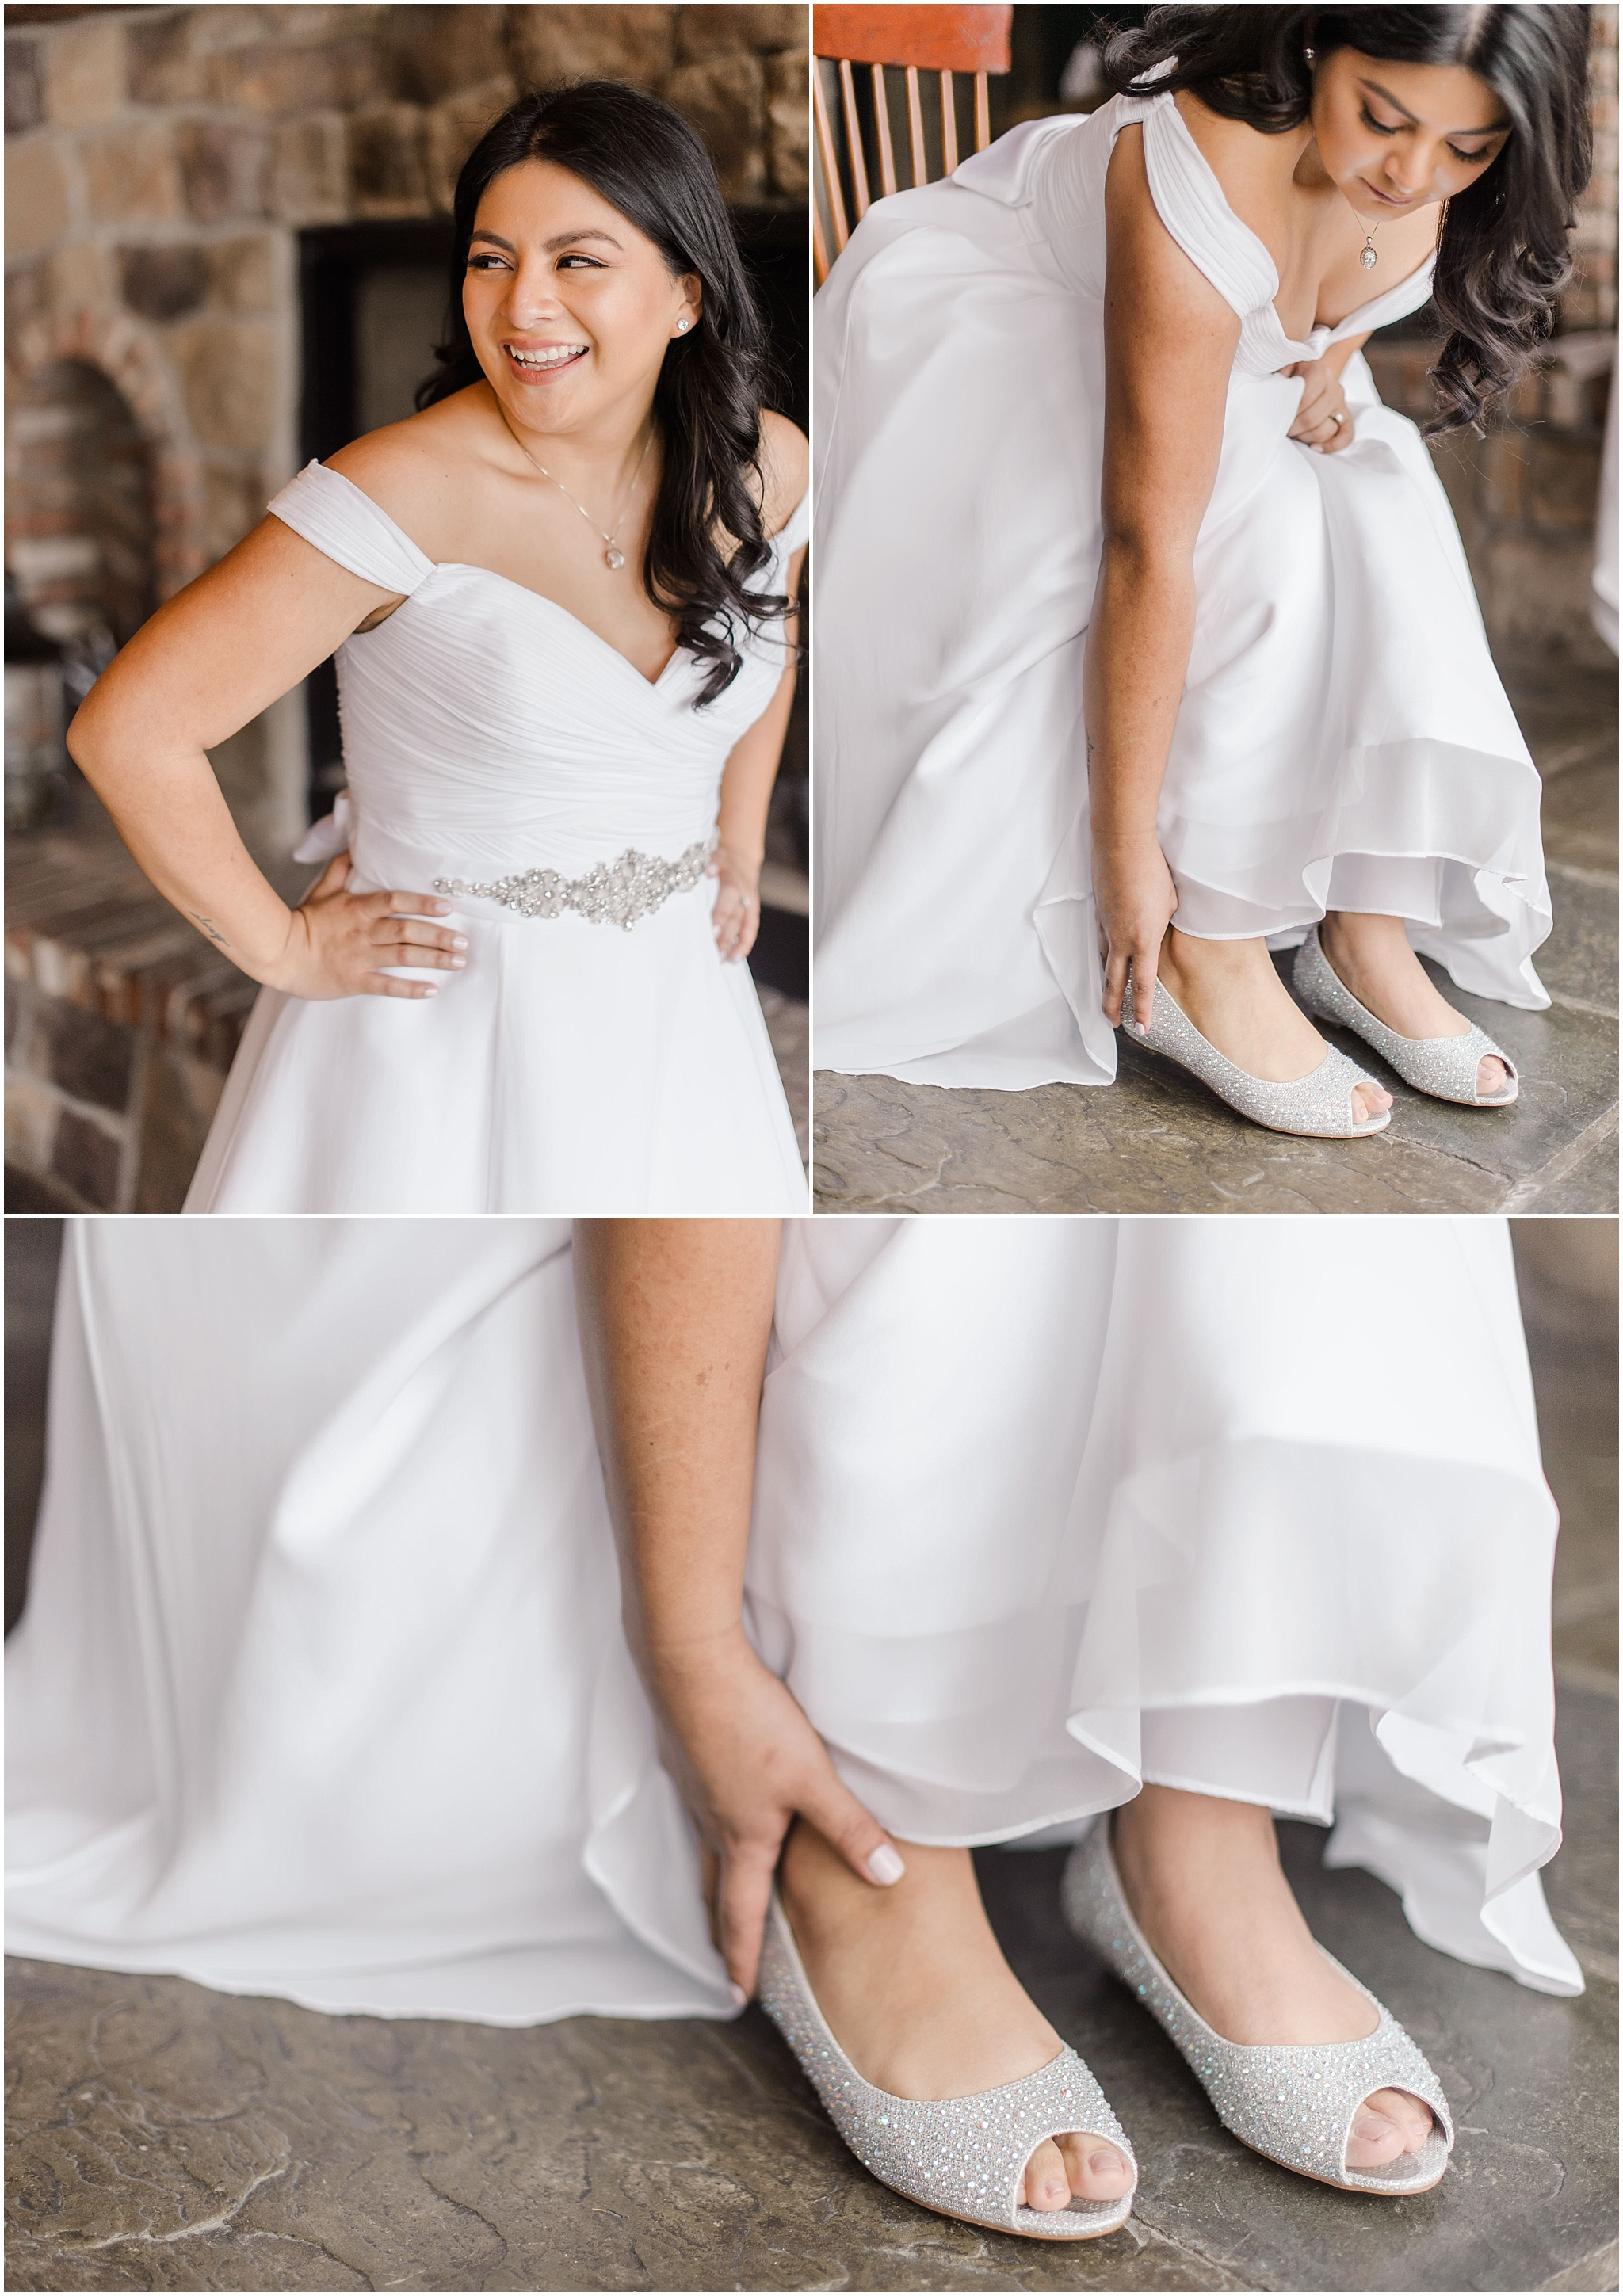 bride putting on the finishing touches of her wedding dress, and shoes for an intimate wedding, elopement